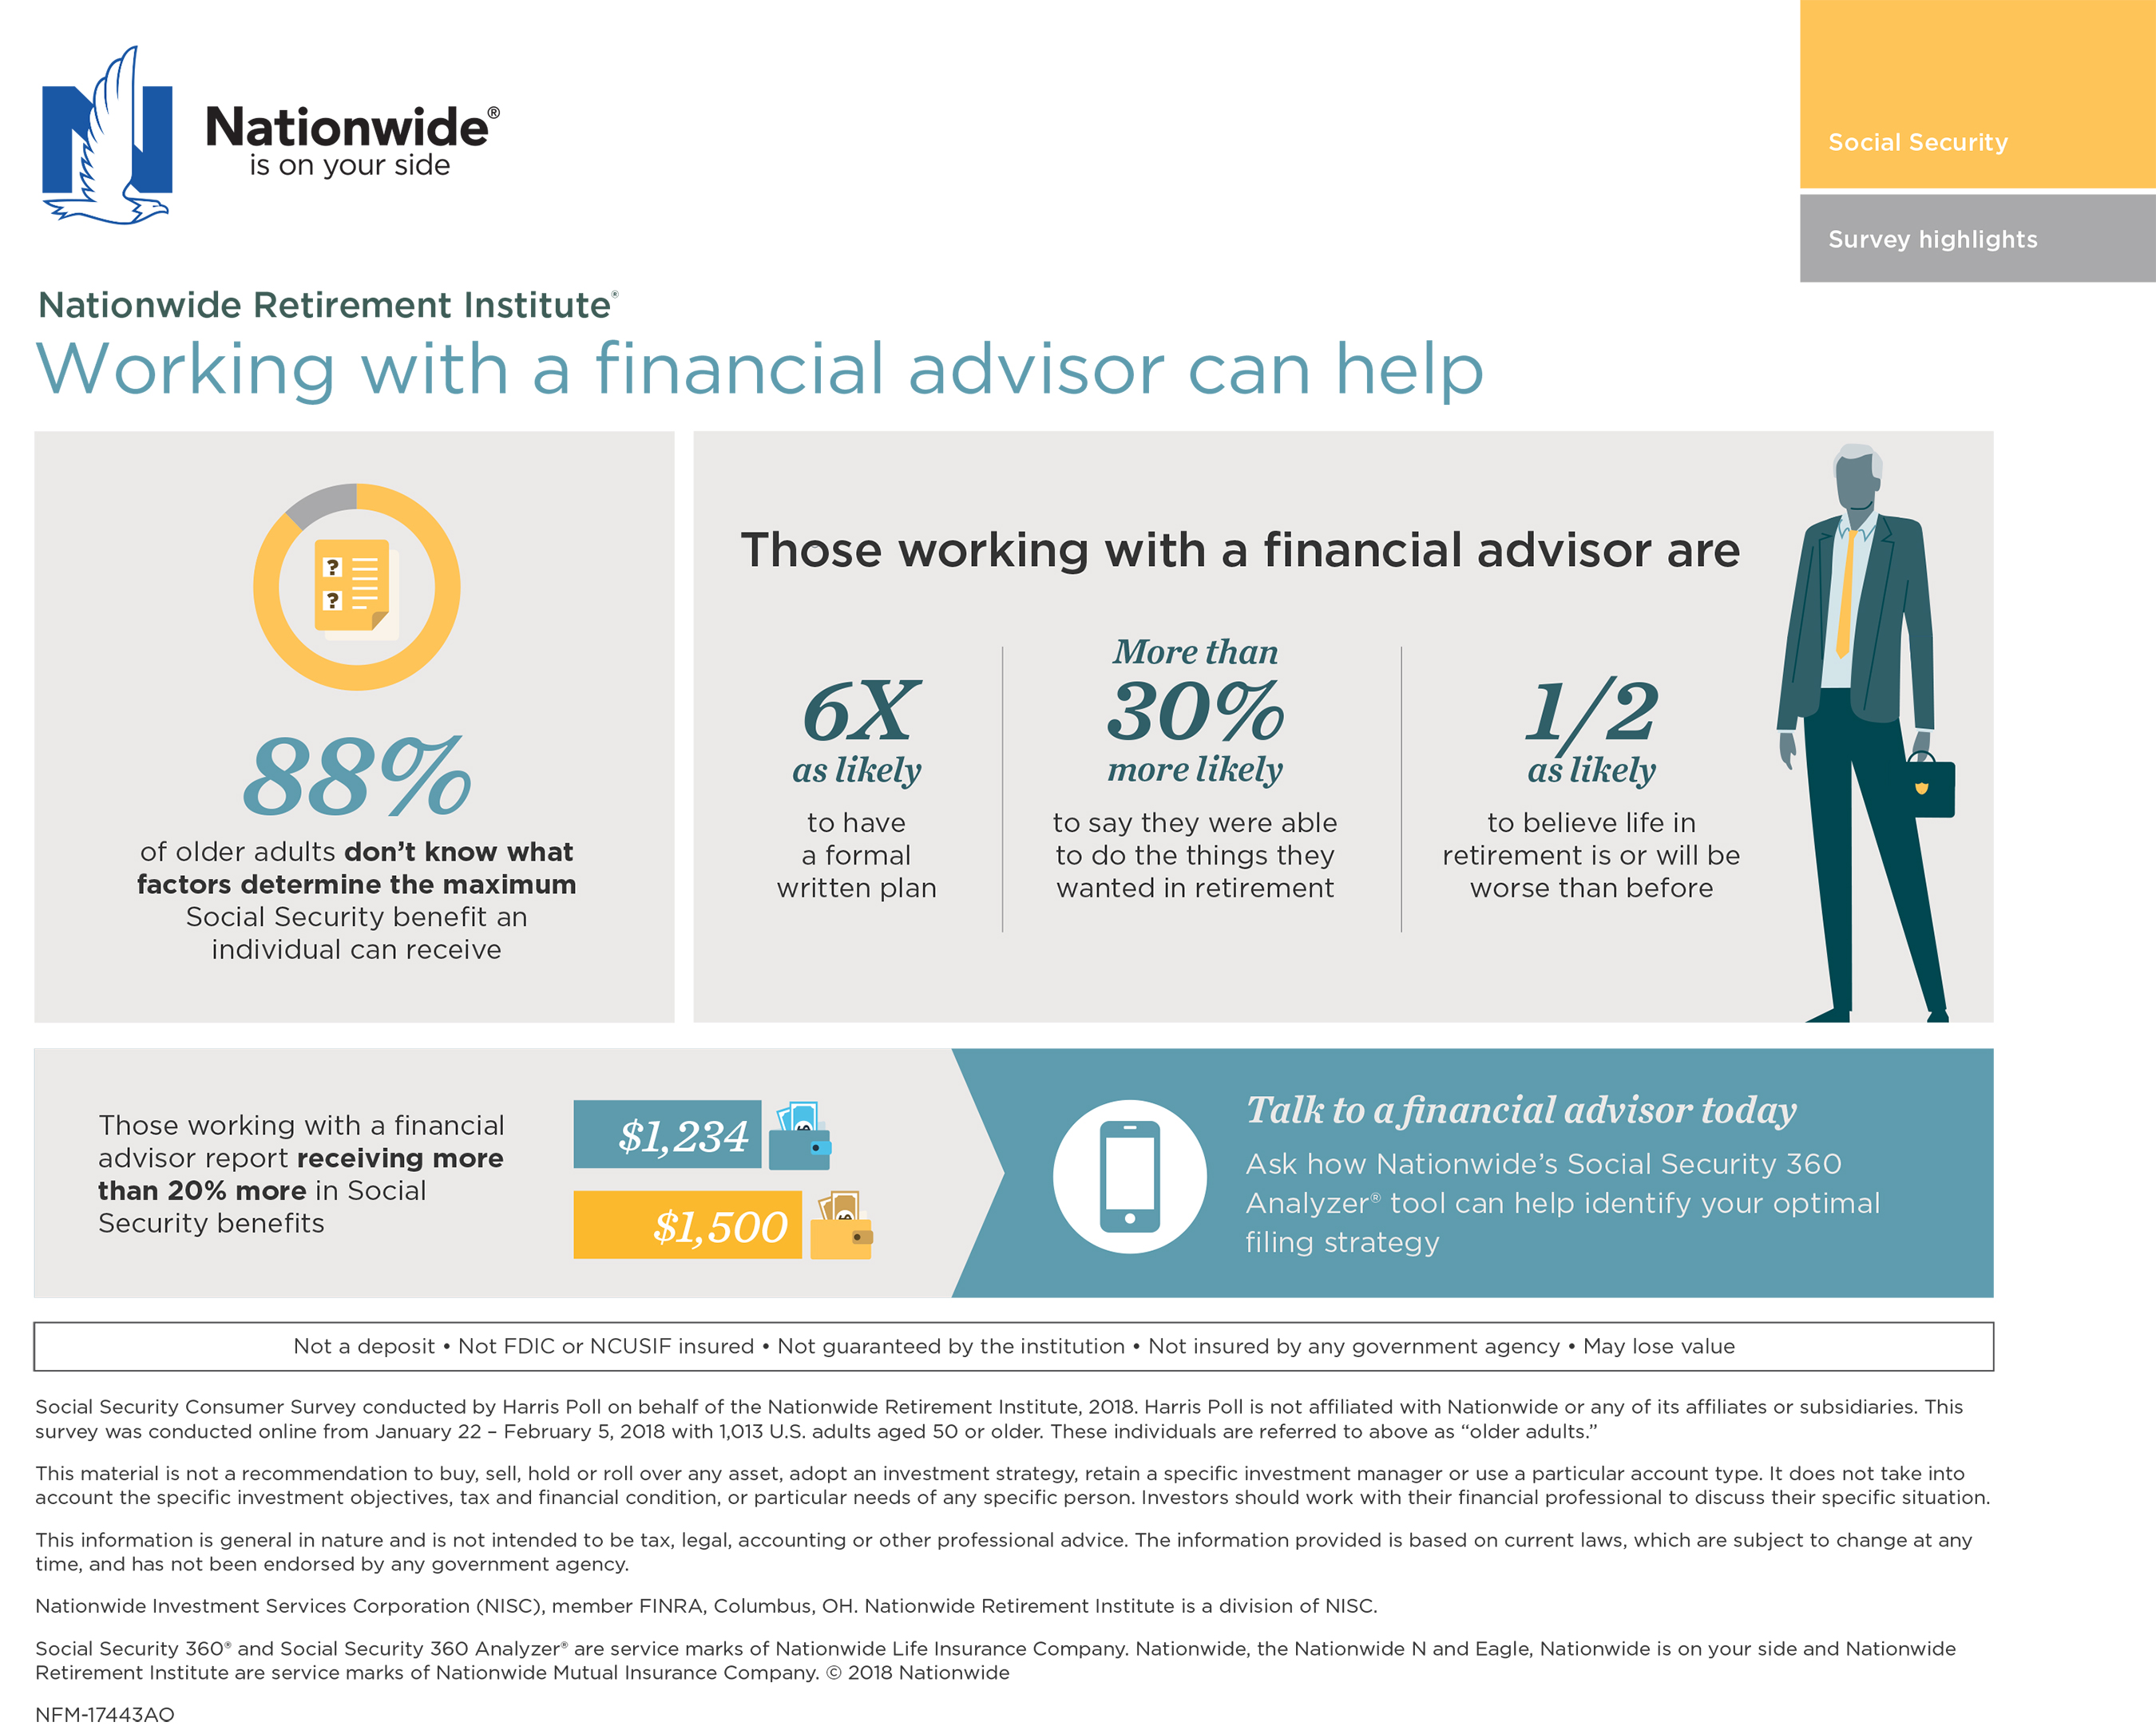 Working with a financial advisor can help